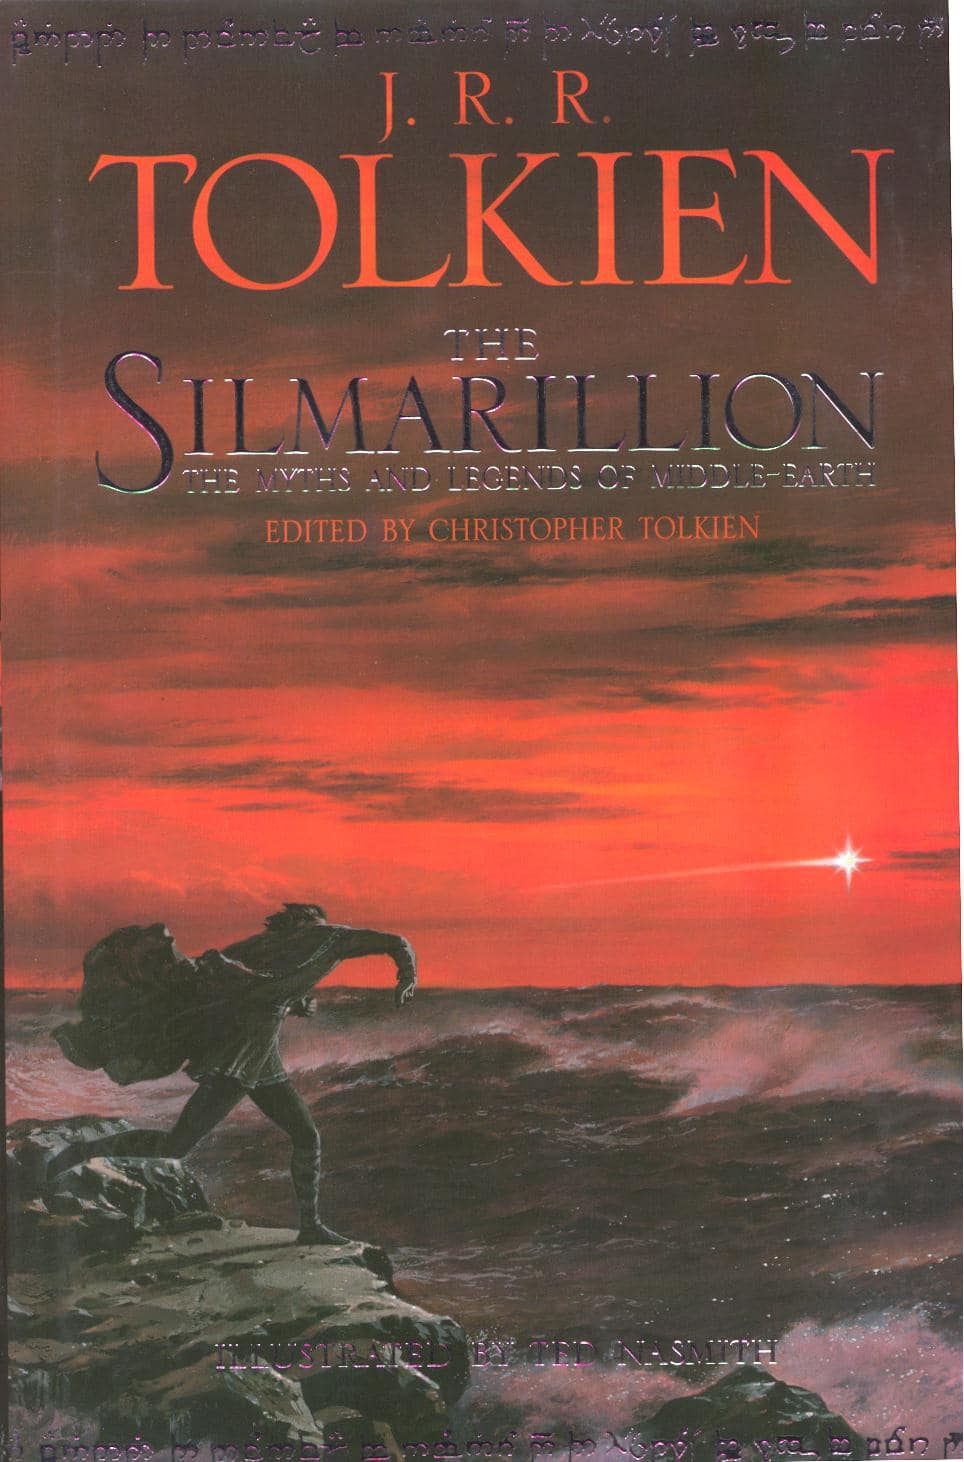 J.R.R.Tolkien: The Silmarillion (ebook w/audio book) free ~ Archive org.